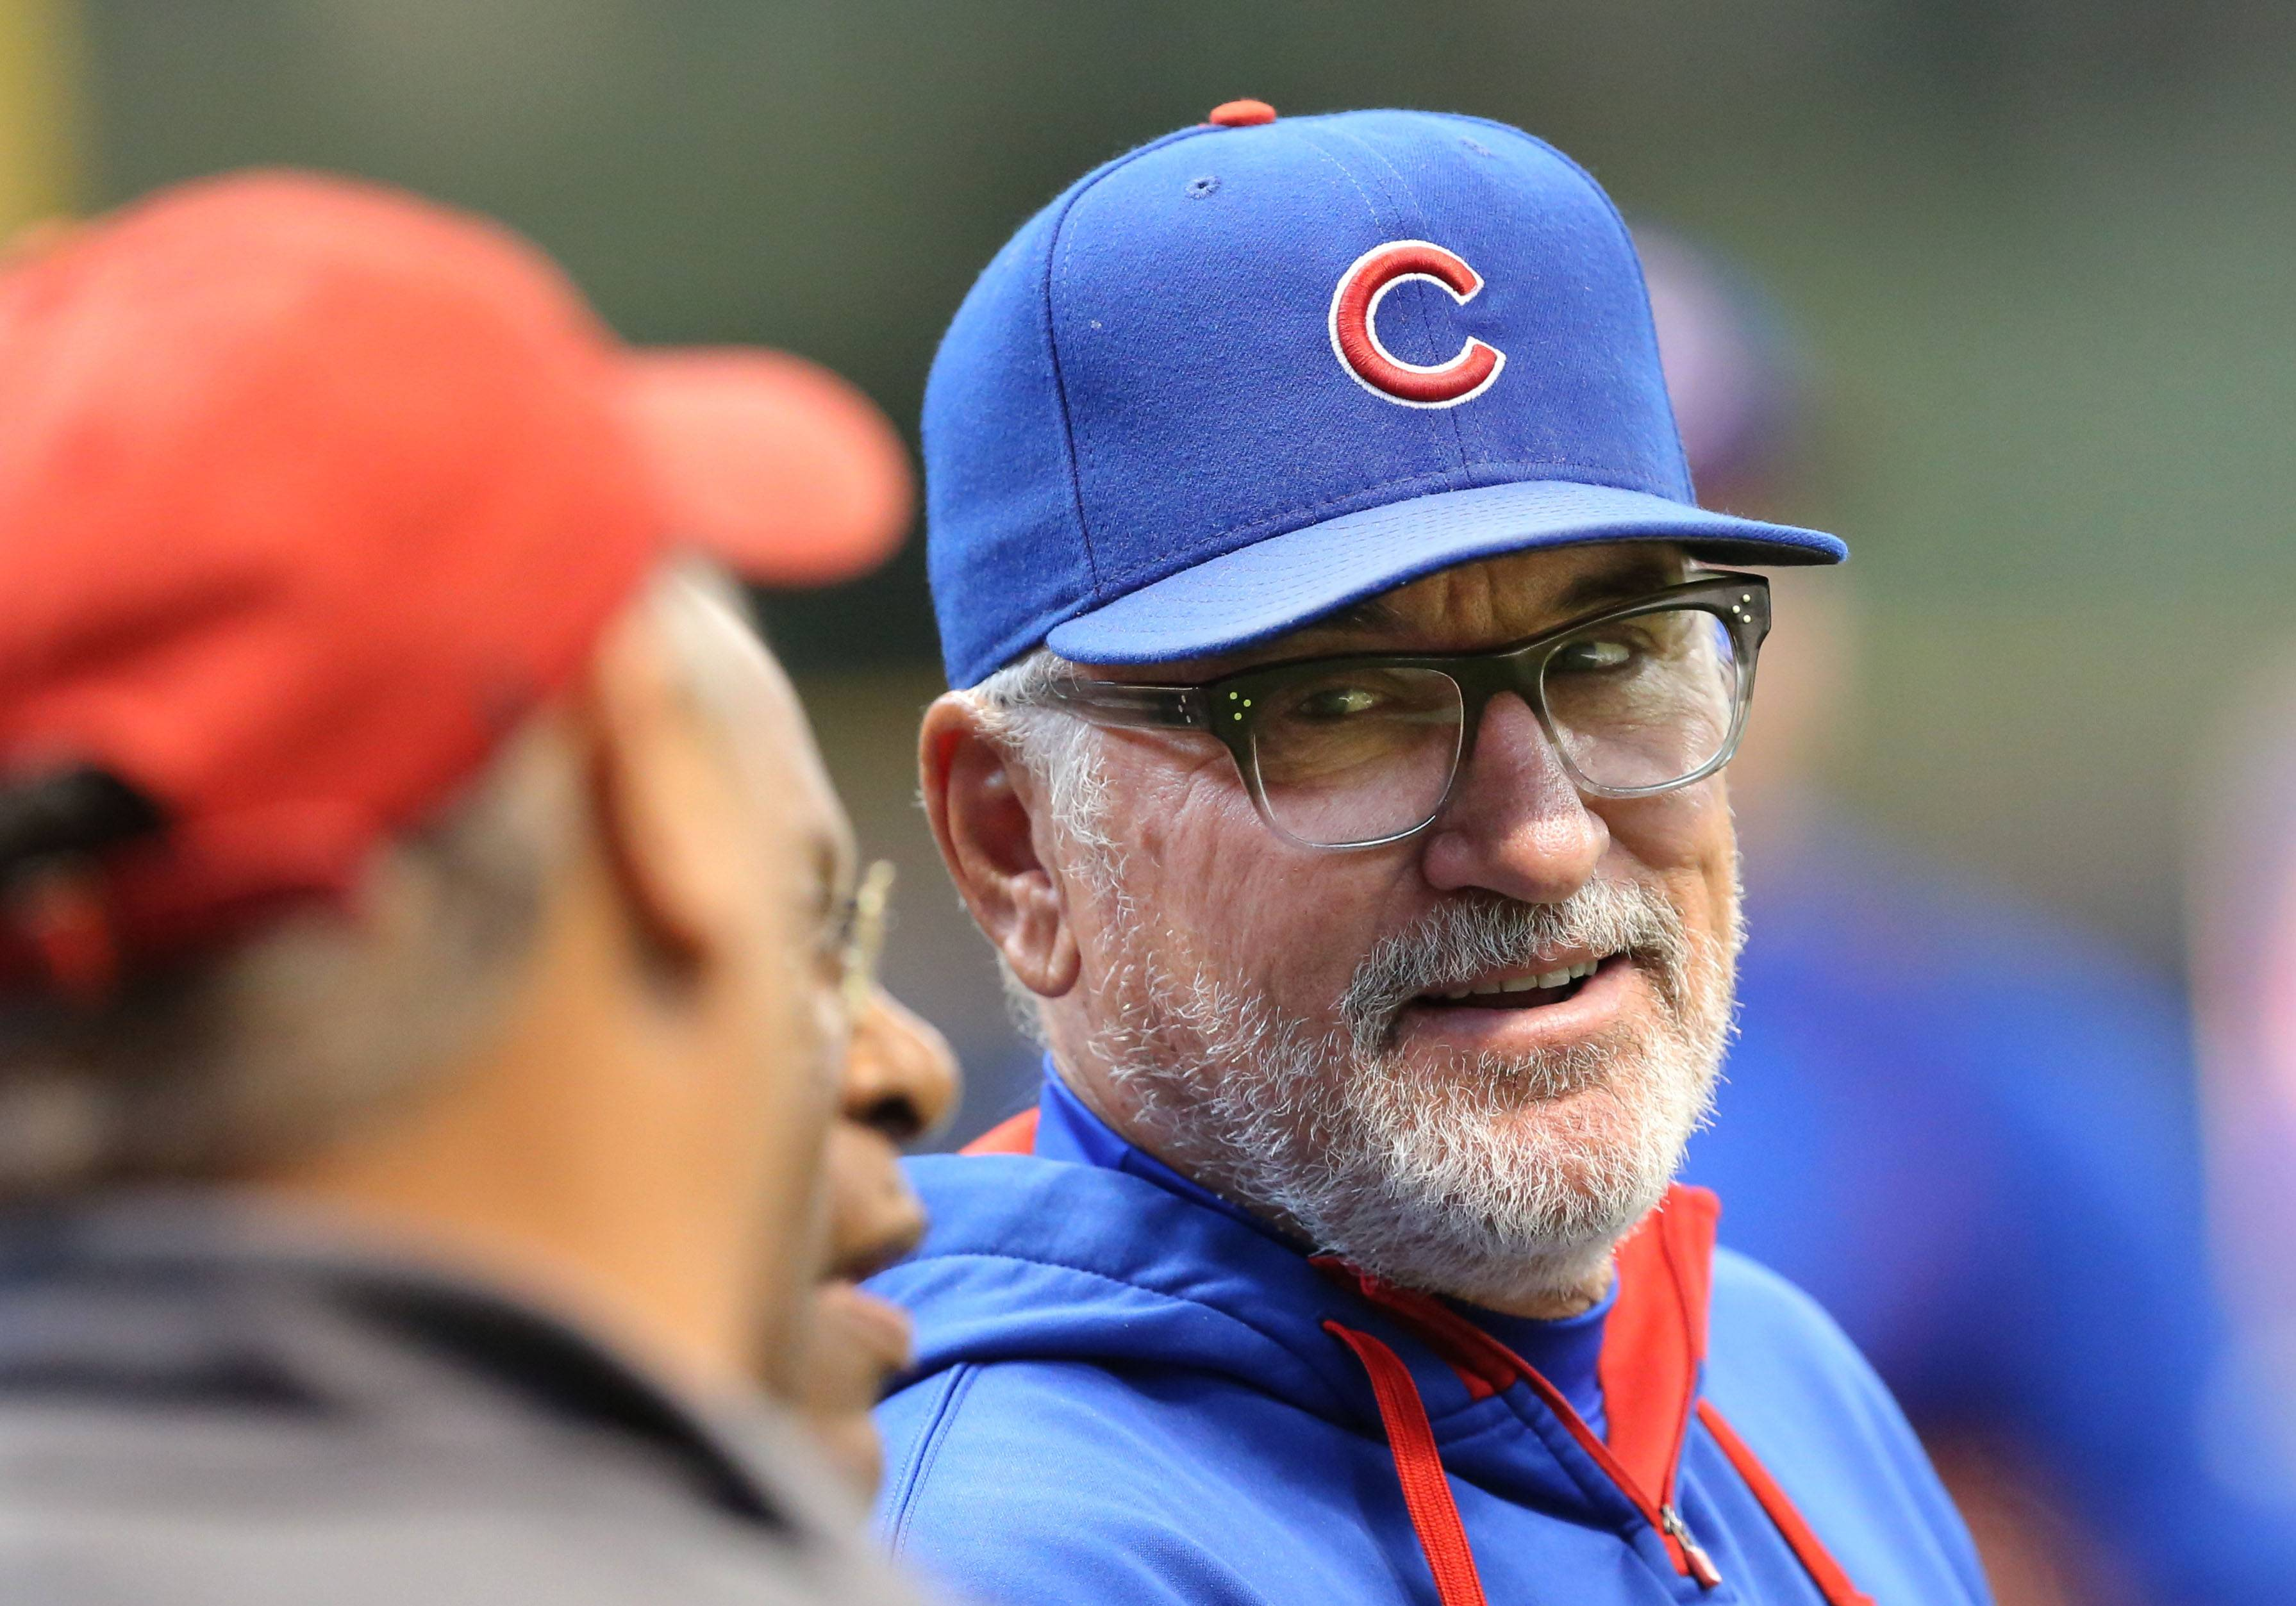 Steve Lundy/slundy@dailyherald.com/2016file Chicago Cubs manager Joe Maddon has helped the young Cubs develop a championship swagger. They don't have to be cute and cuddly anymore.